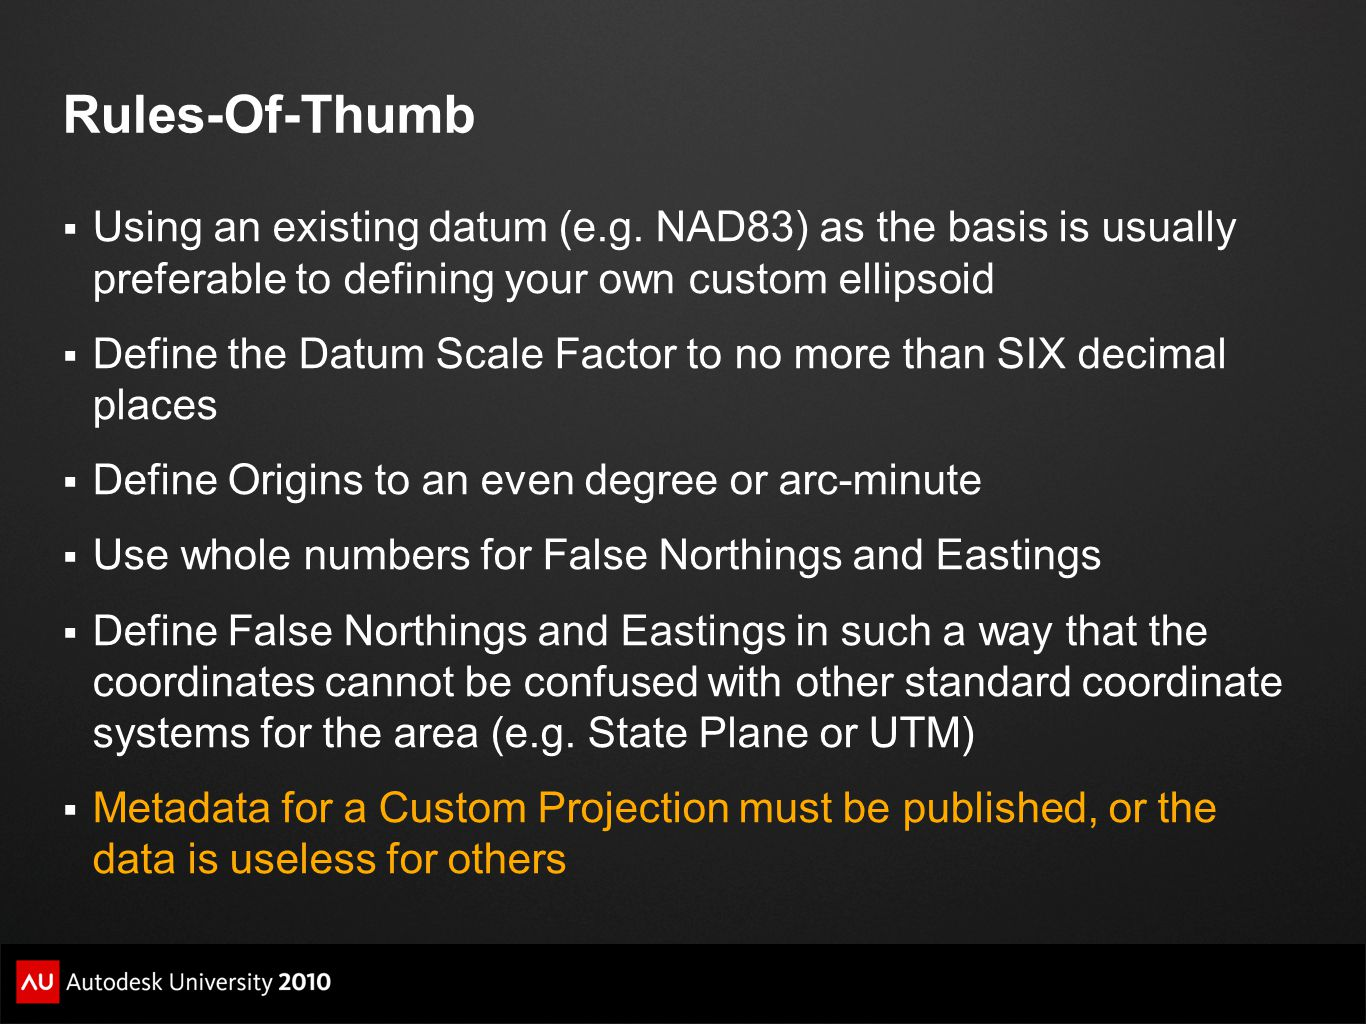 Rules-Of-Thumb Using an existing datum (e.g. NAD83) as the basis is usually preferable to defining your own custom ellipsoid.